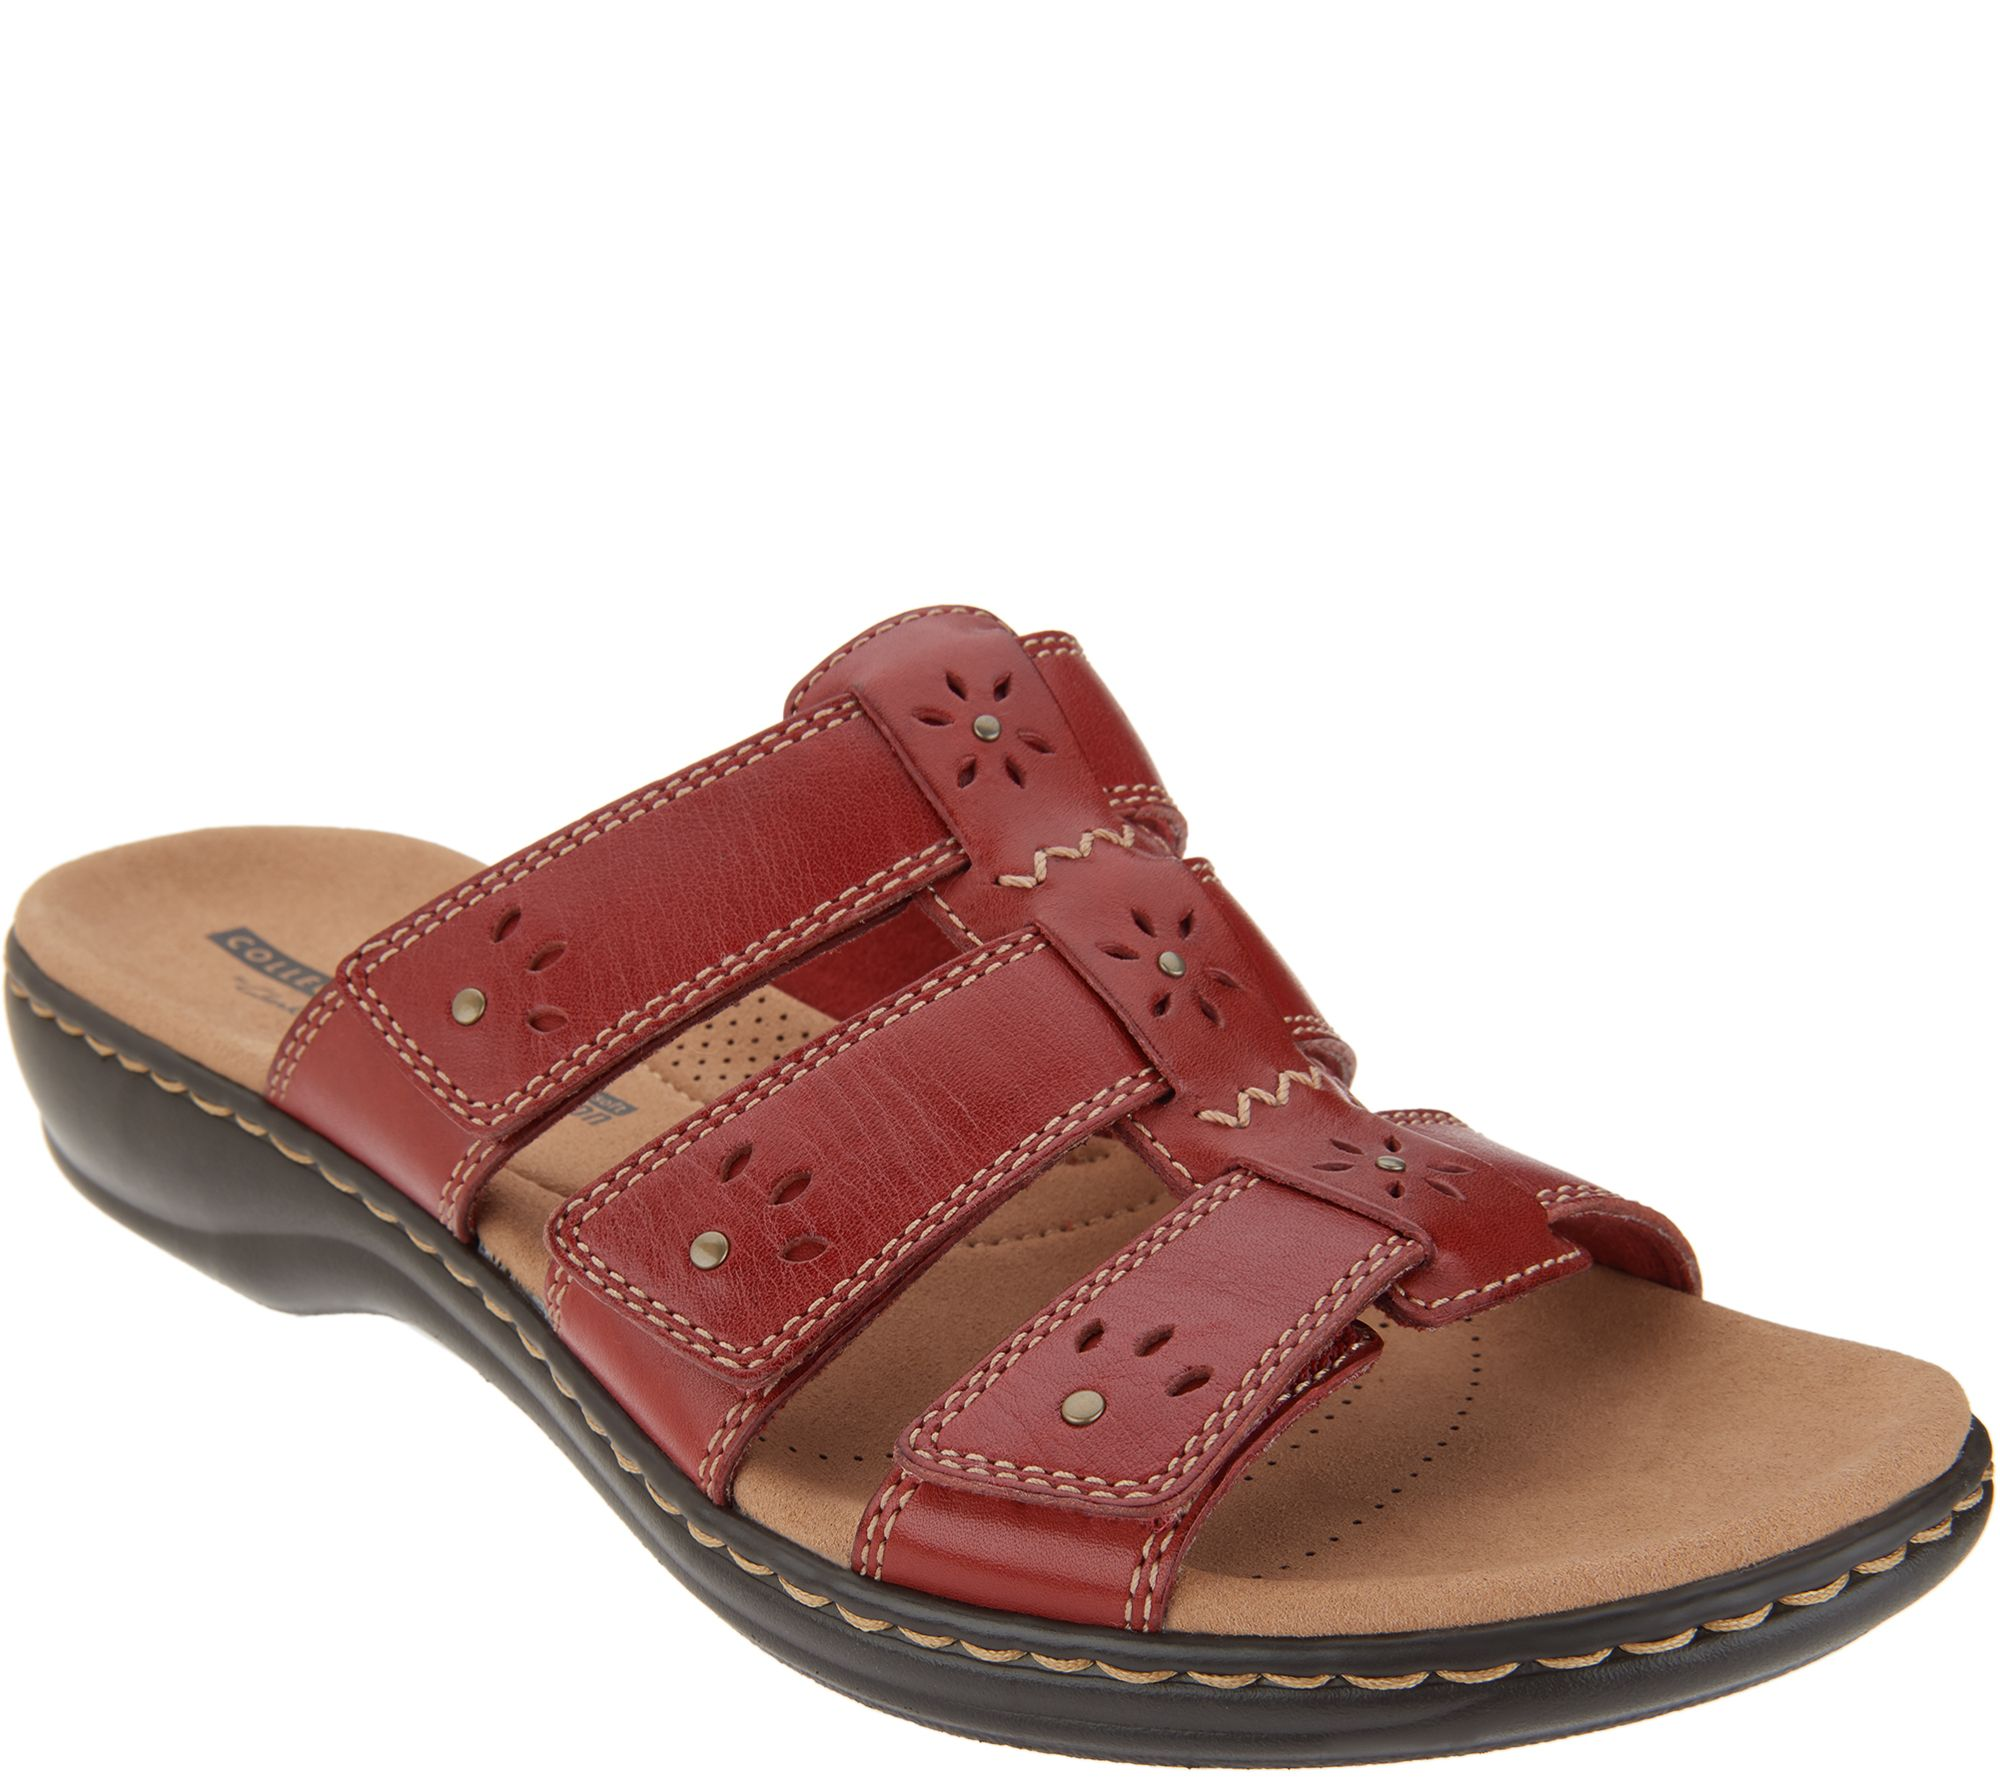 b910ab44f70 Clarks Collection Leather Slide Sandals - Leisa Spring - Page 1 — QVC.com